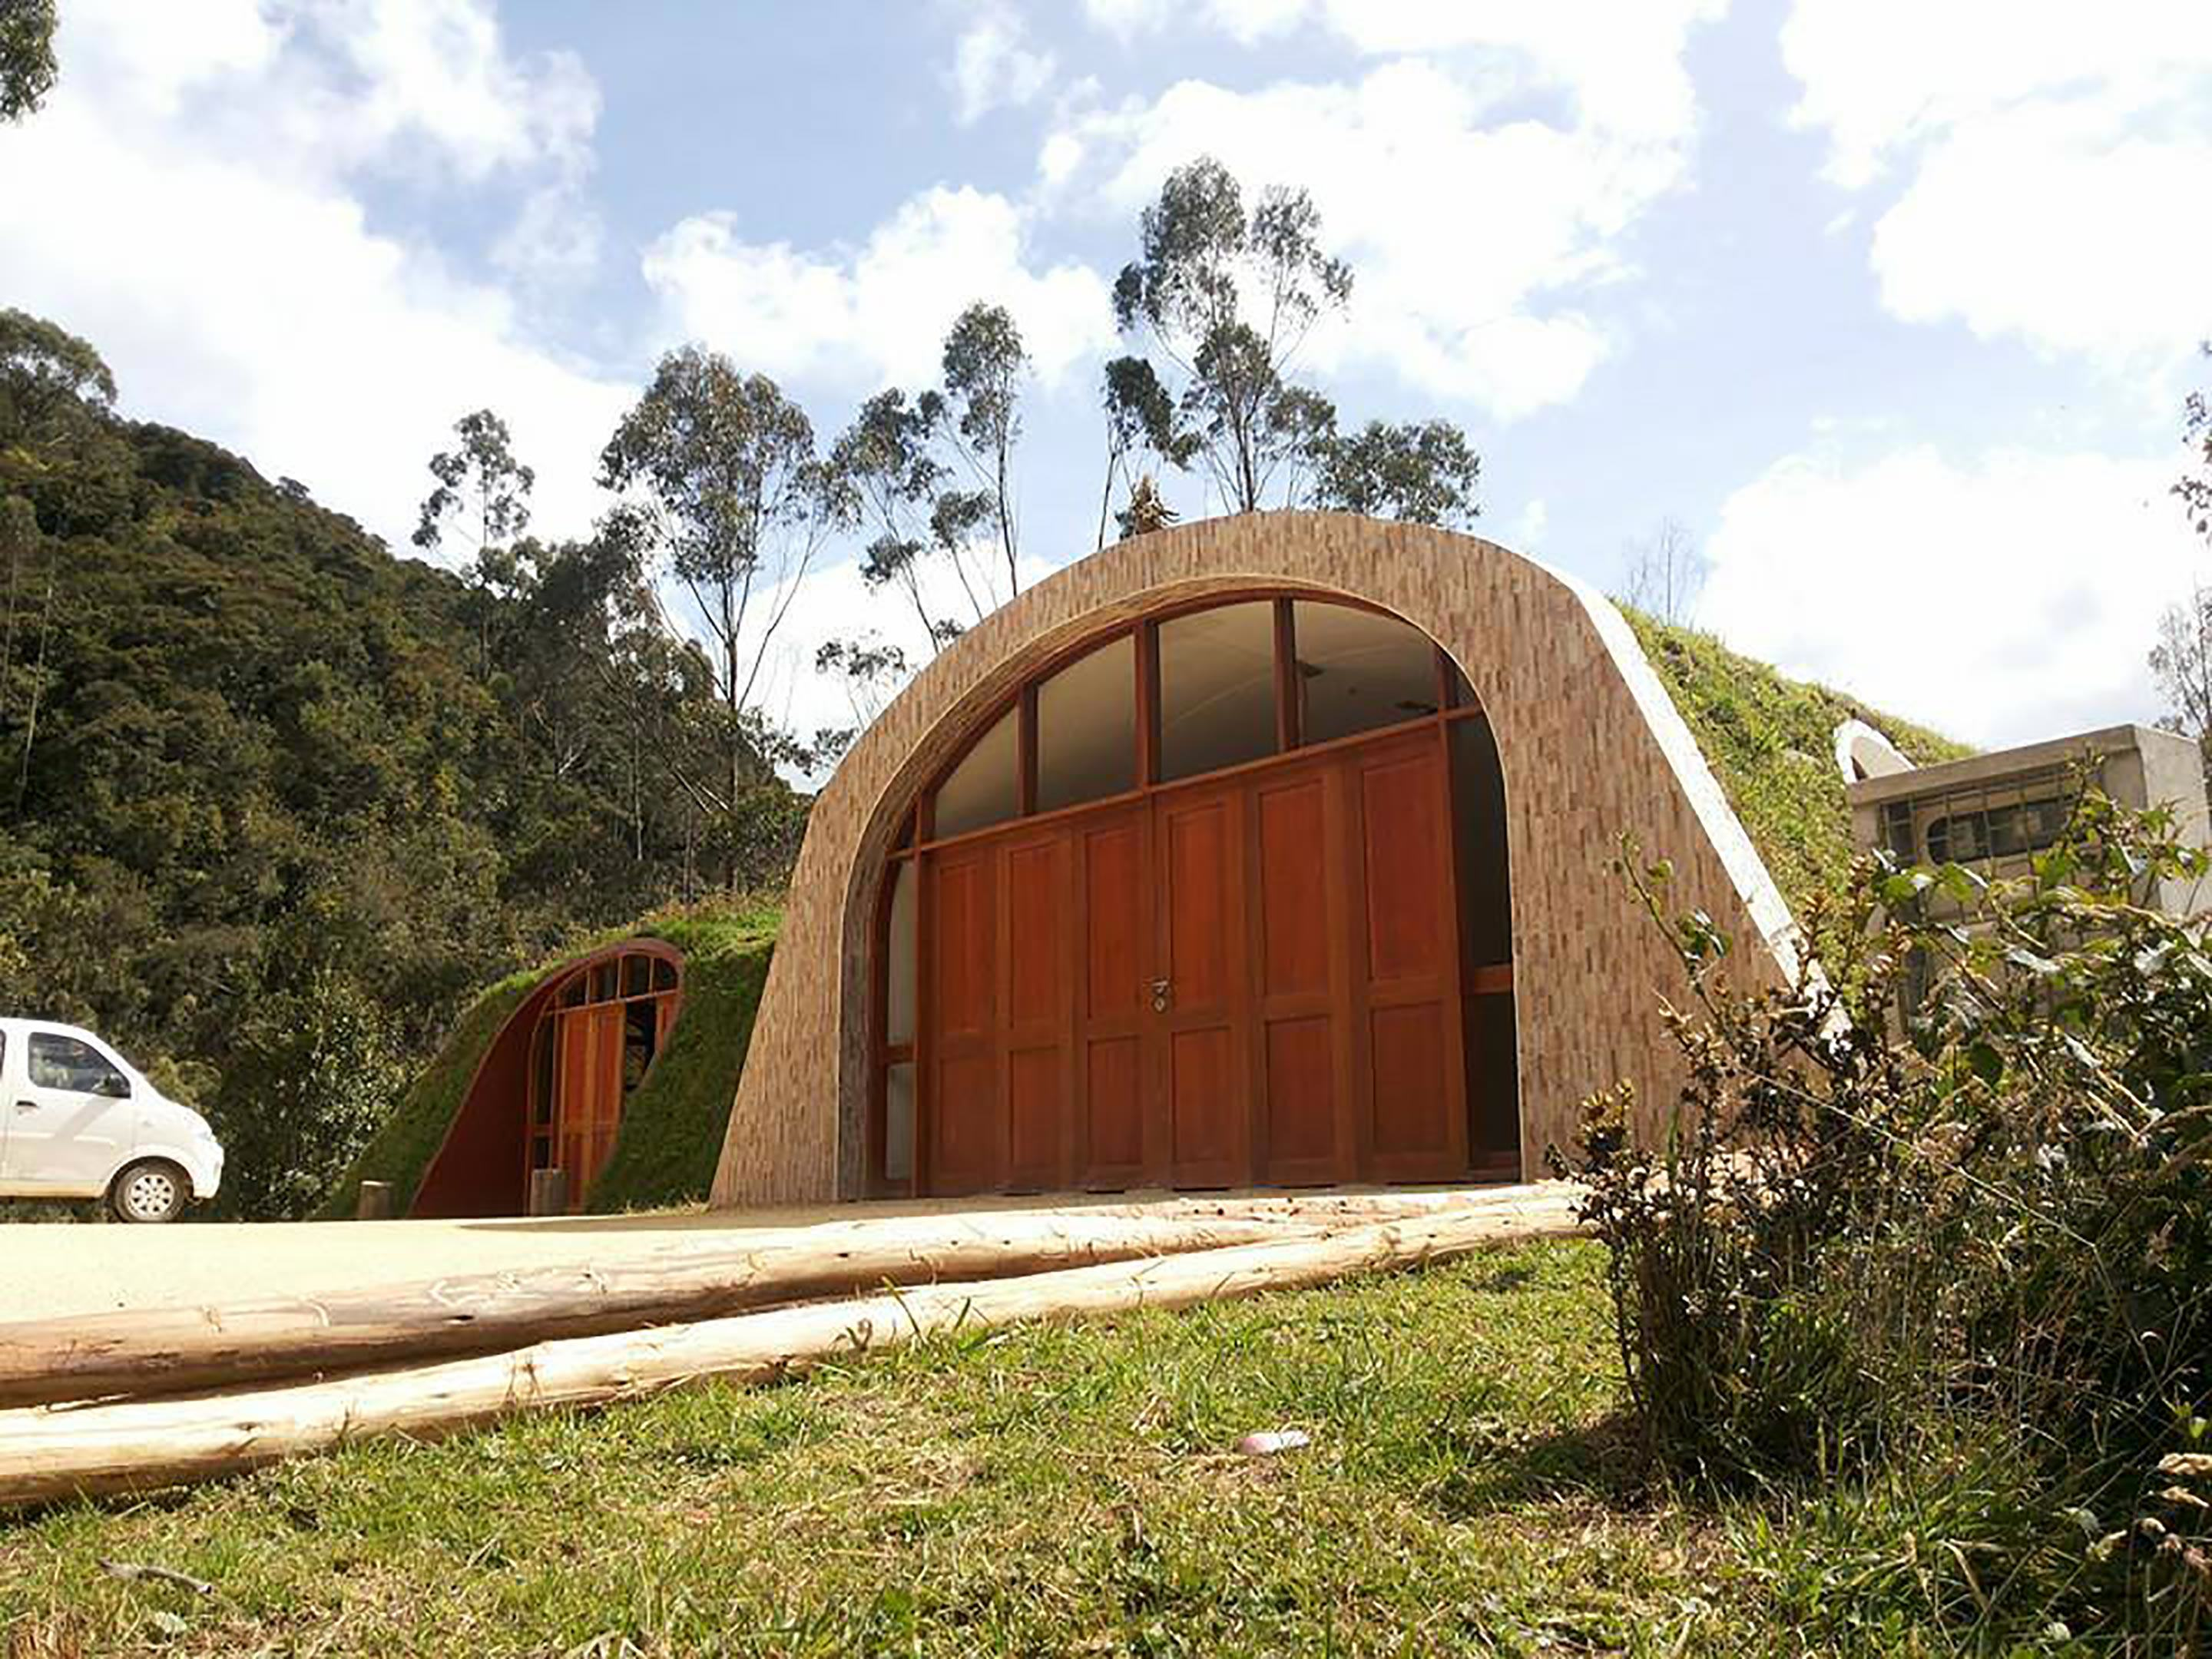 house 1 Company Builds Hobbit Houses And You Can Actually Live There